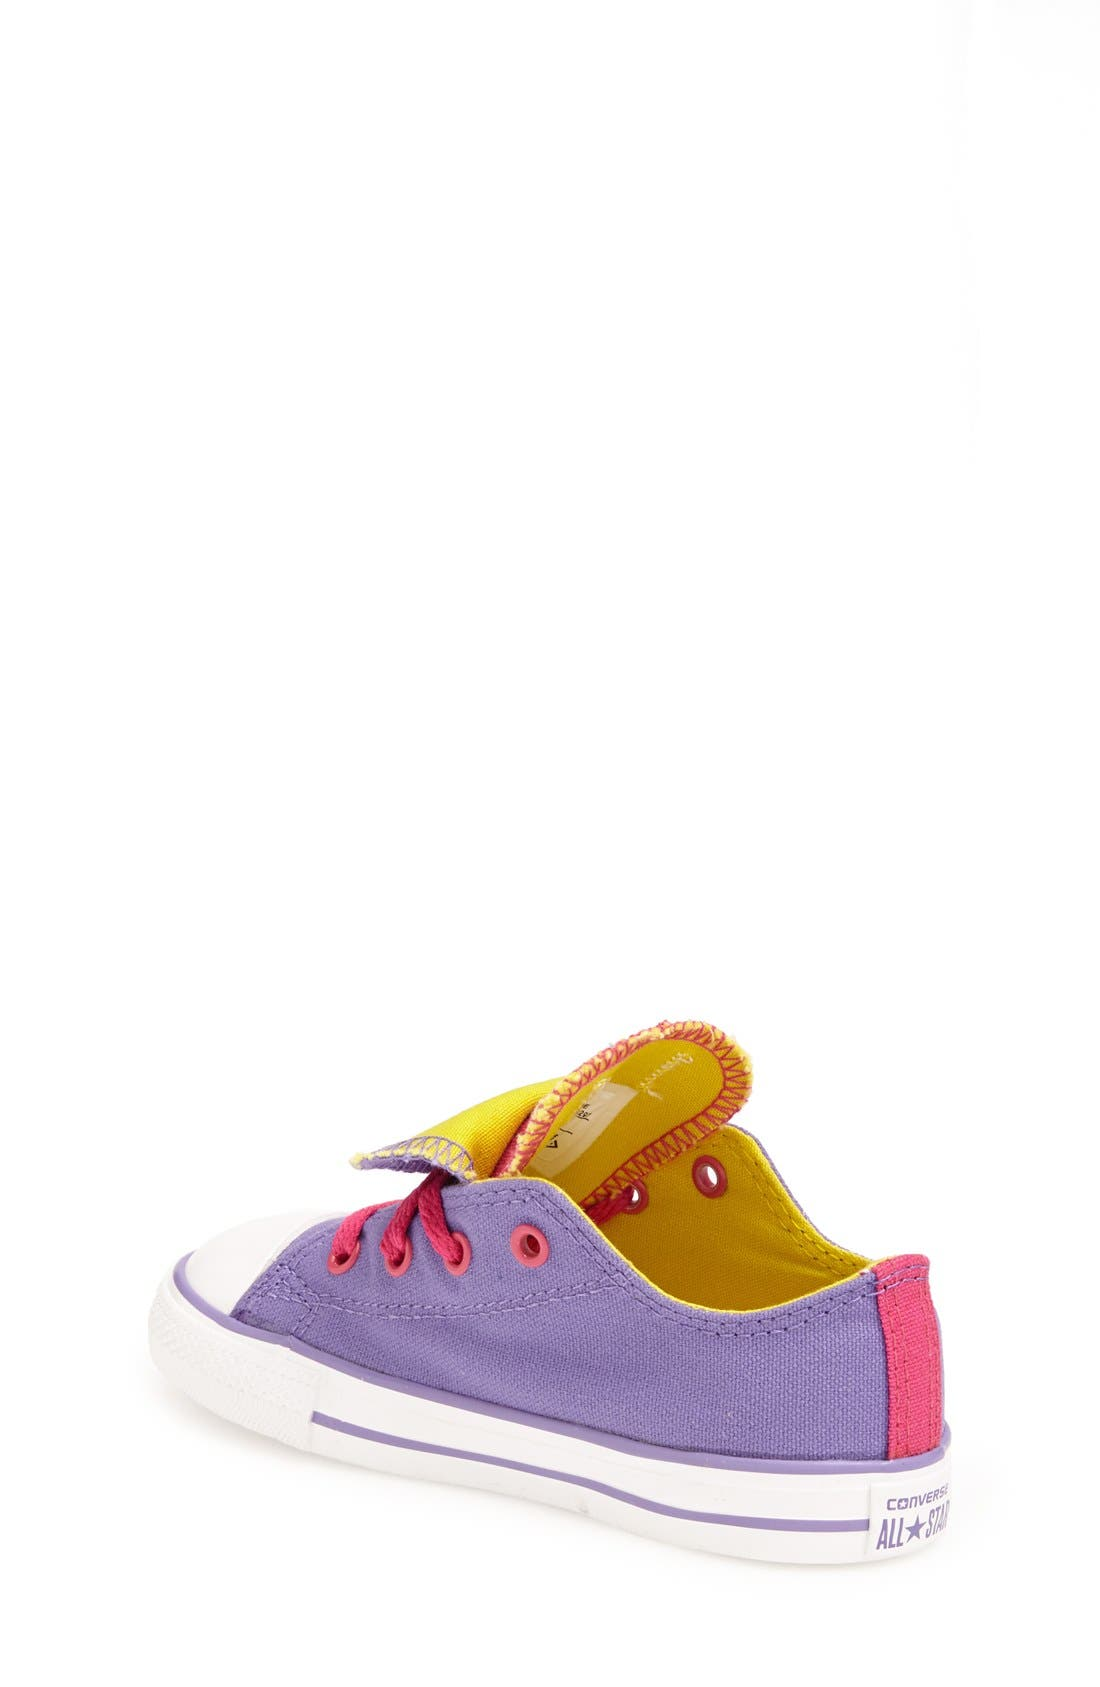 Alternate Image 2  - Converse Chuck Taylor® All Star® Double Tongue Sneaker (Baby, Walker & Toddler)